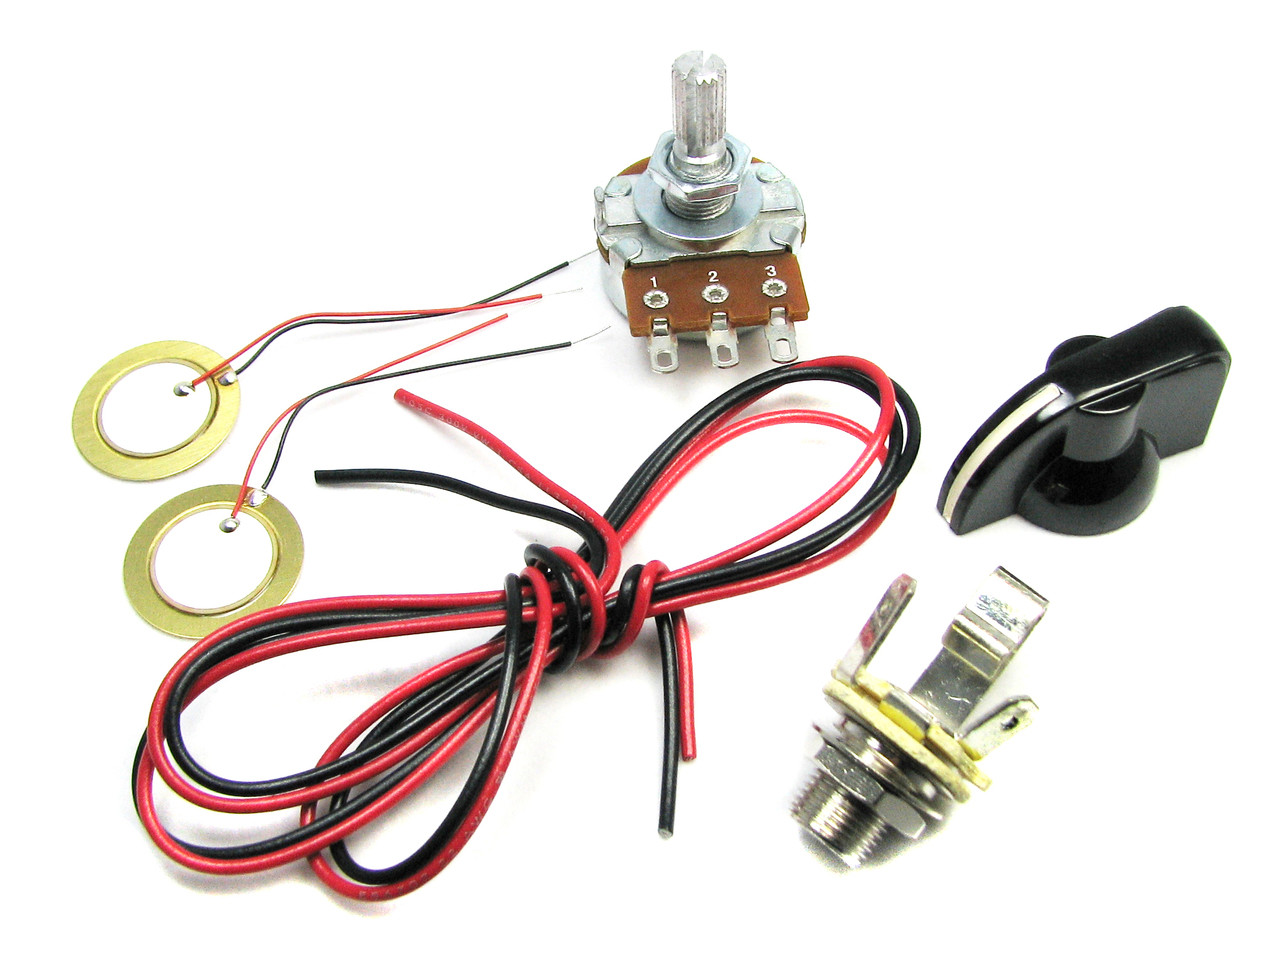 medium resolution of basic piezo pickup kit for cigar box guitar instructions included